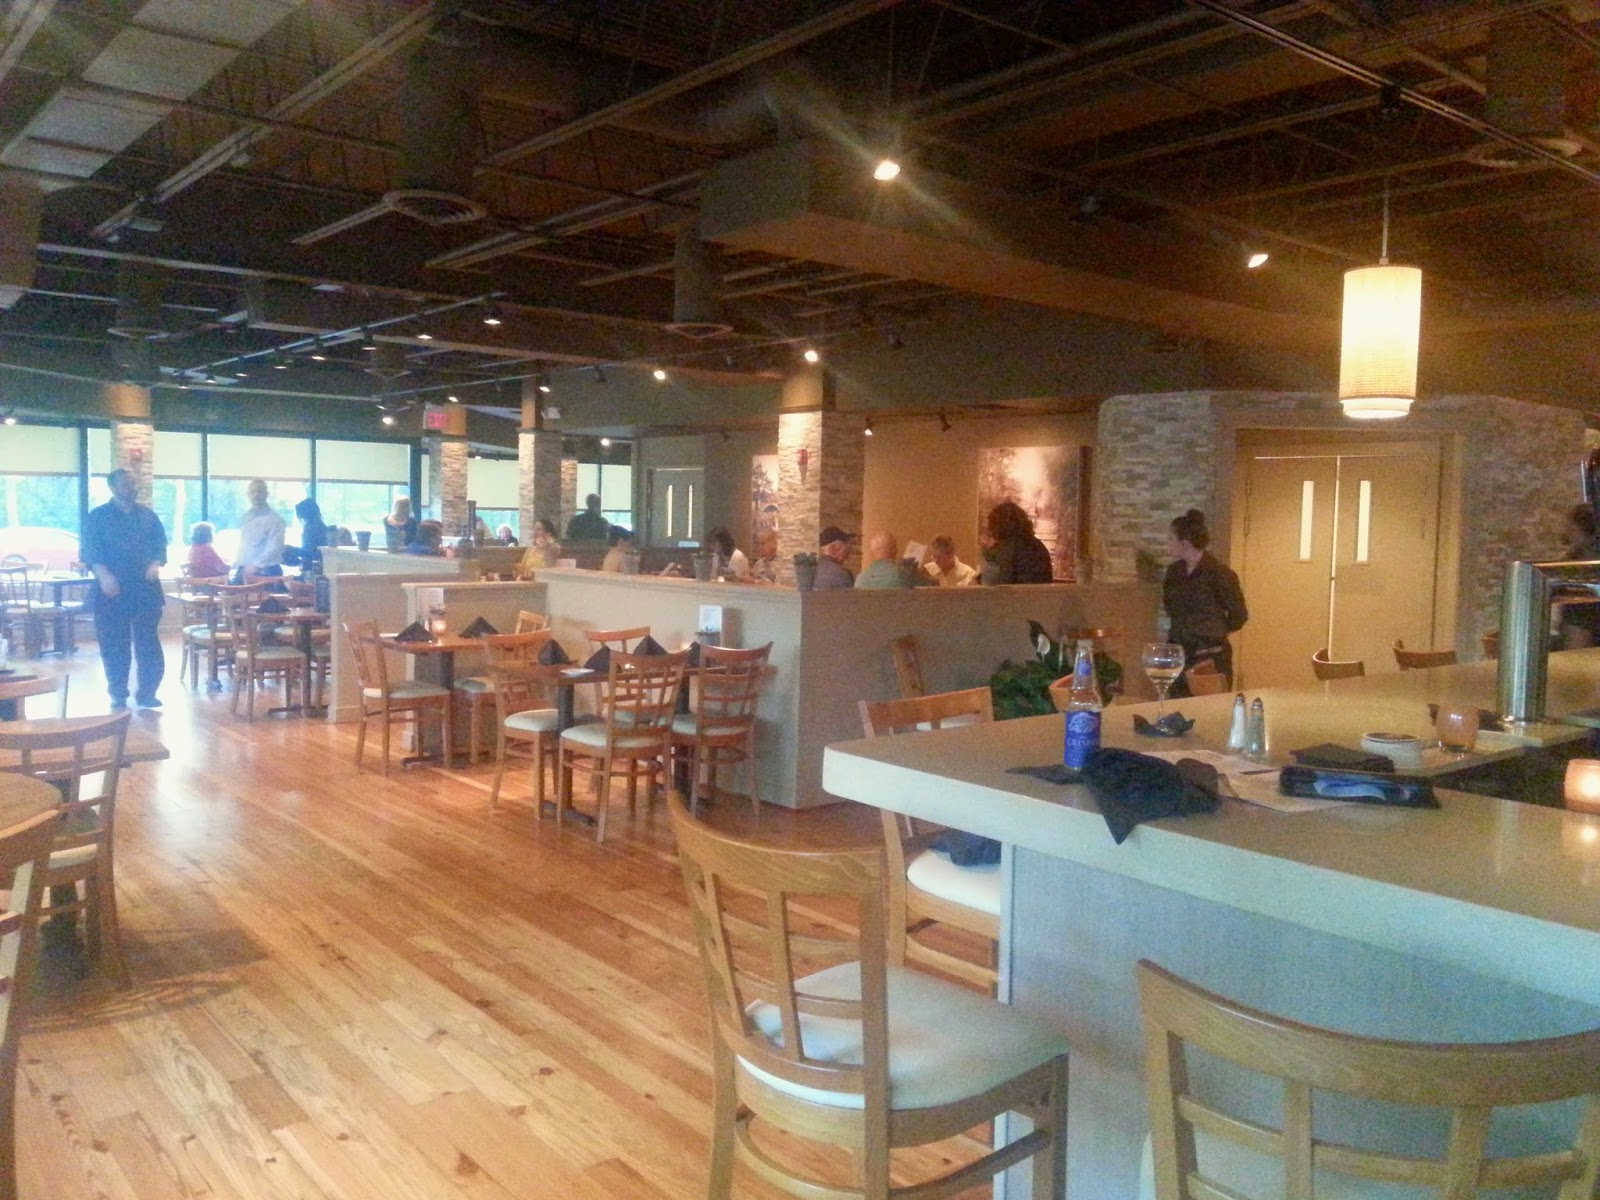 Good Eats: Centre Park Grill in Columbia – The Bare Midriff